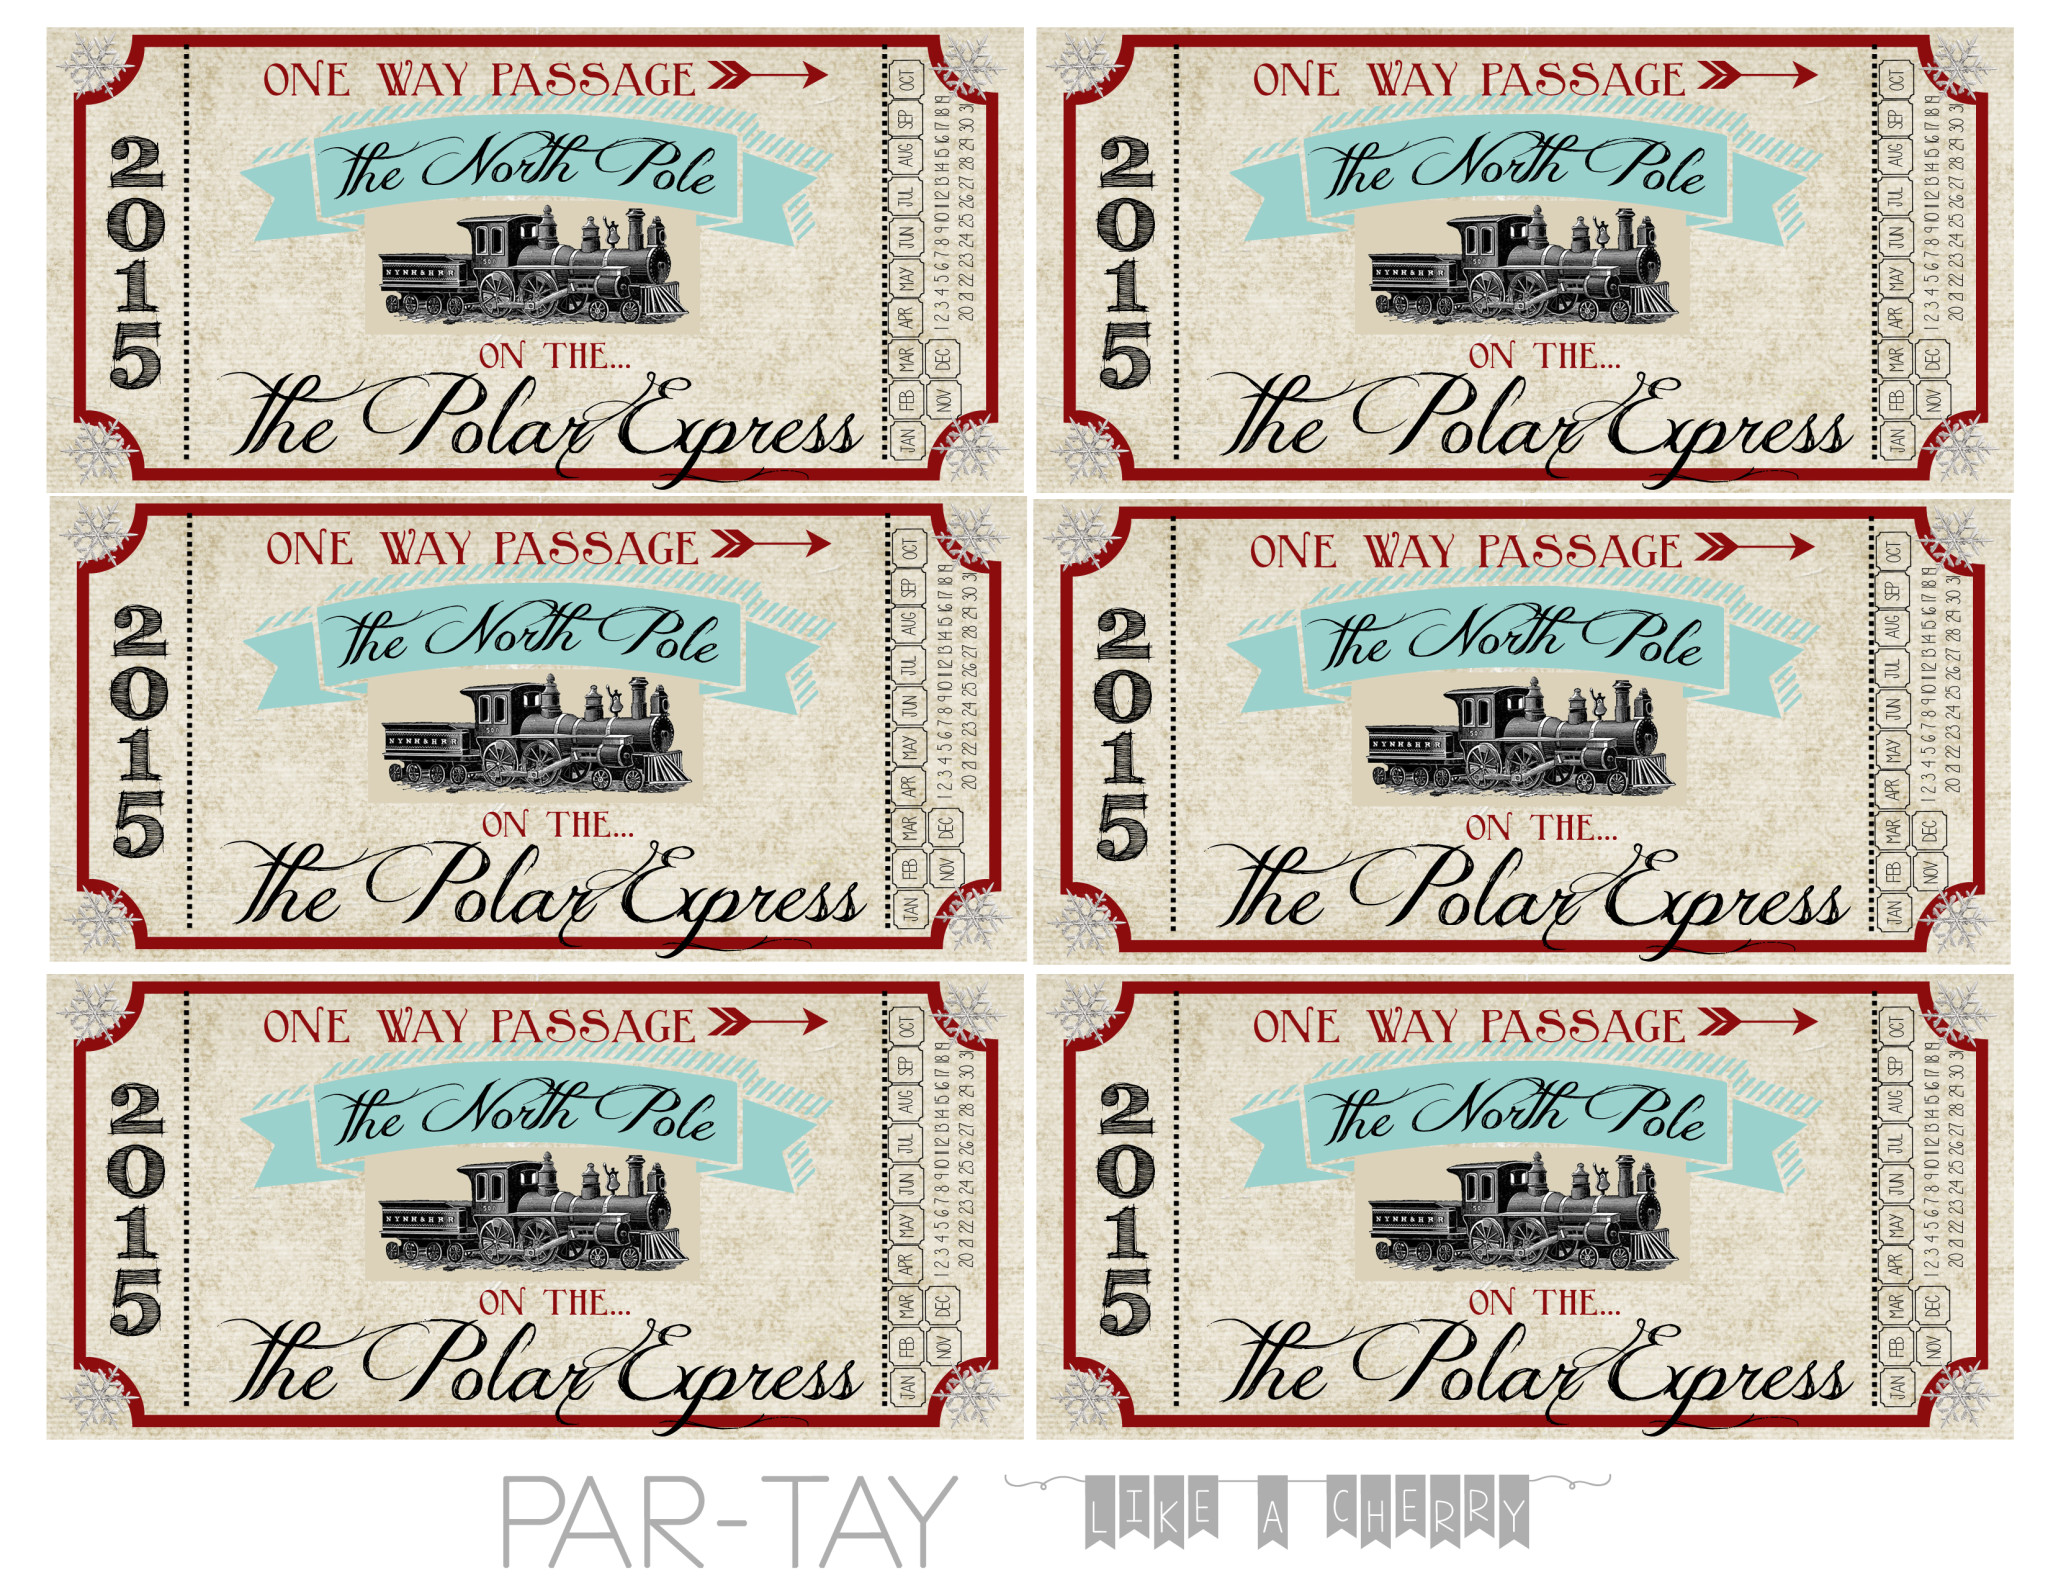 Polar Express Train Tickets Free Printable Party Like a Cherry